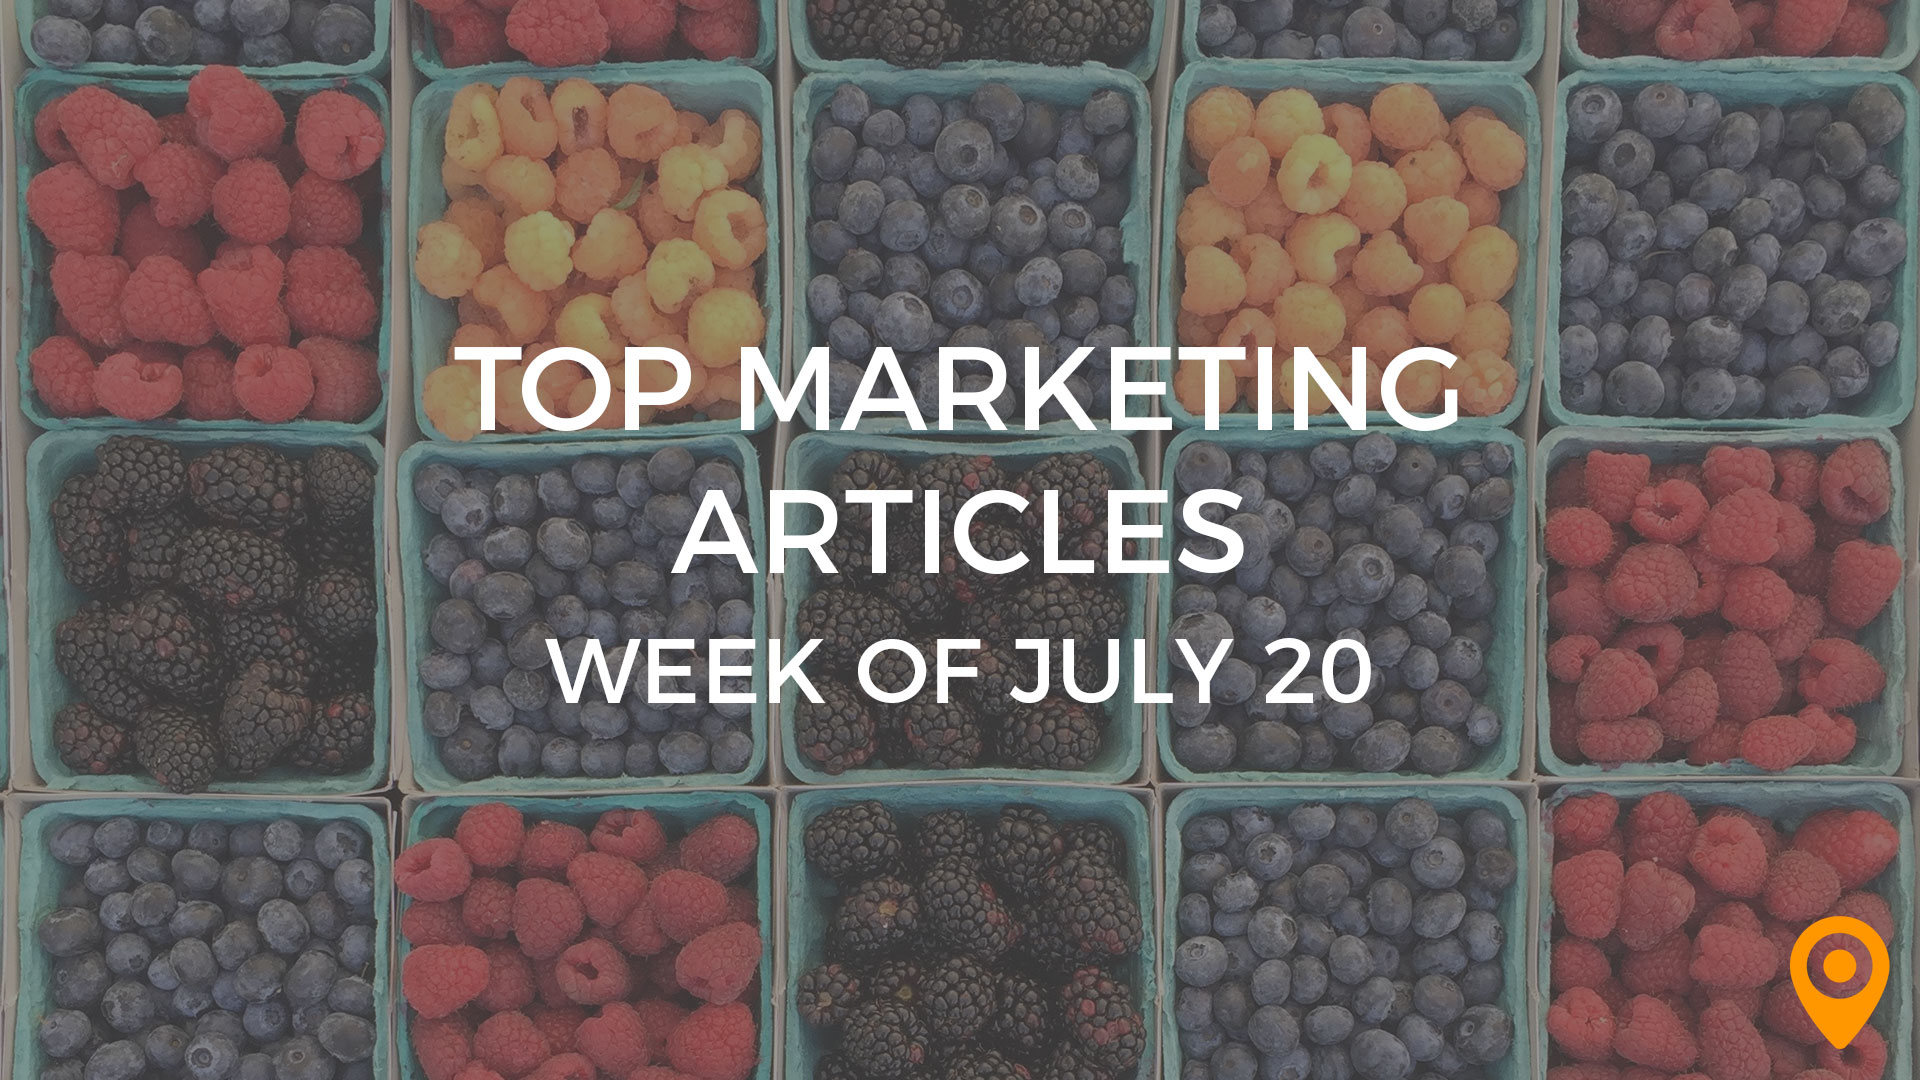 Top Marketing Articles - July 20